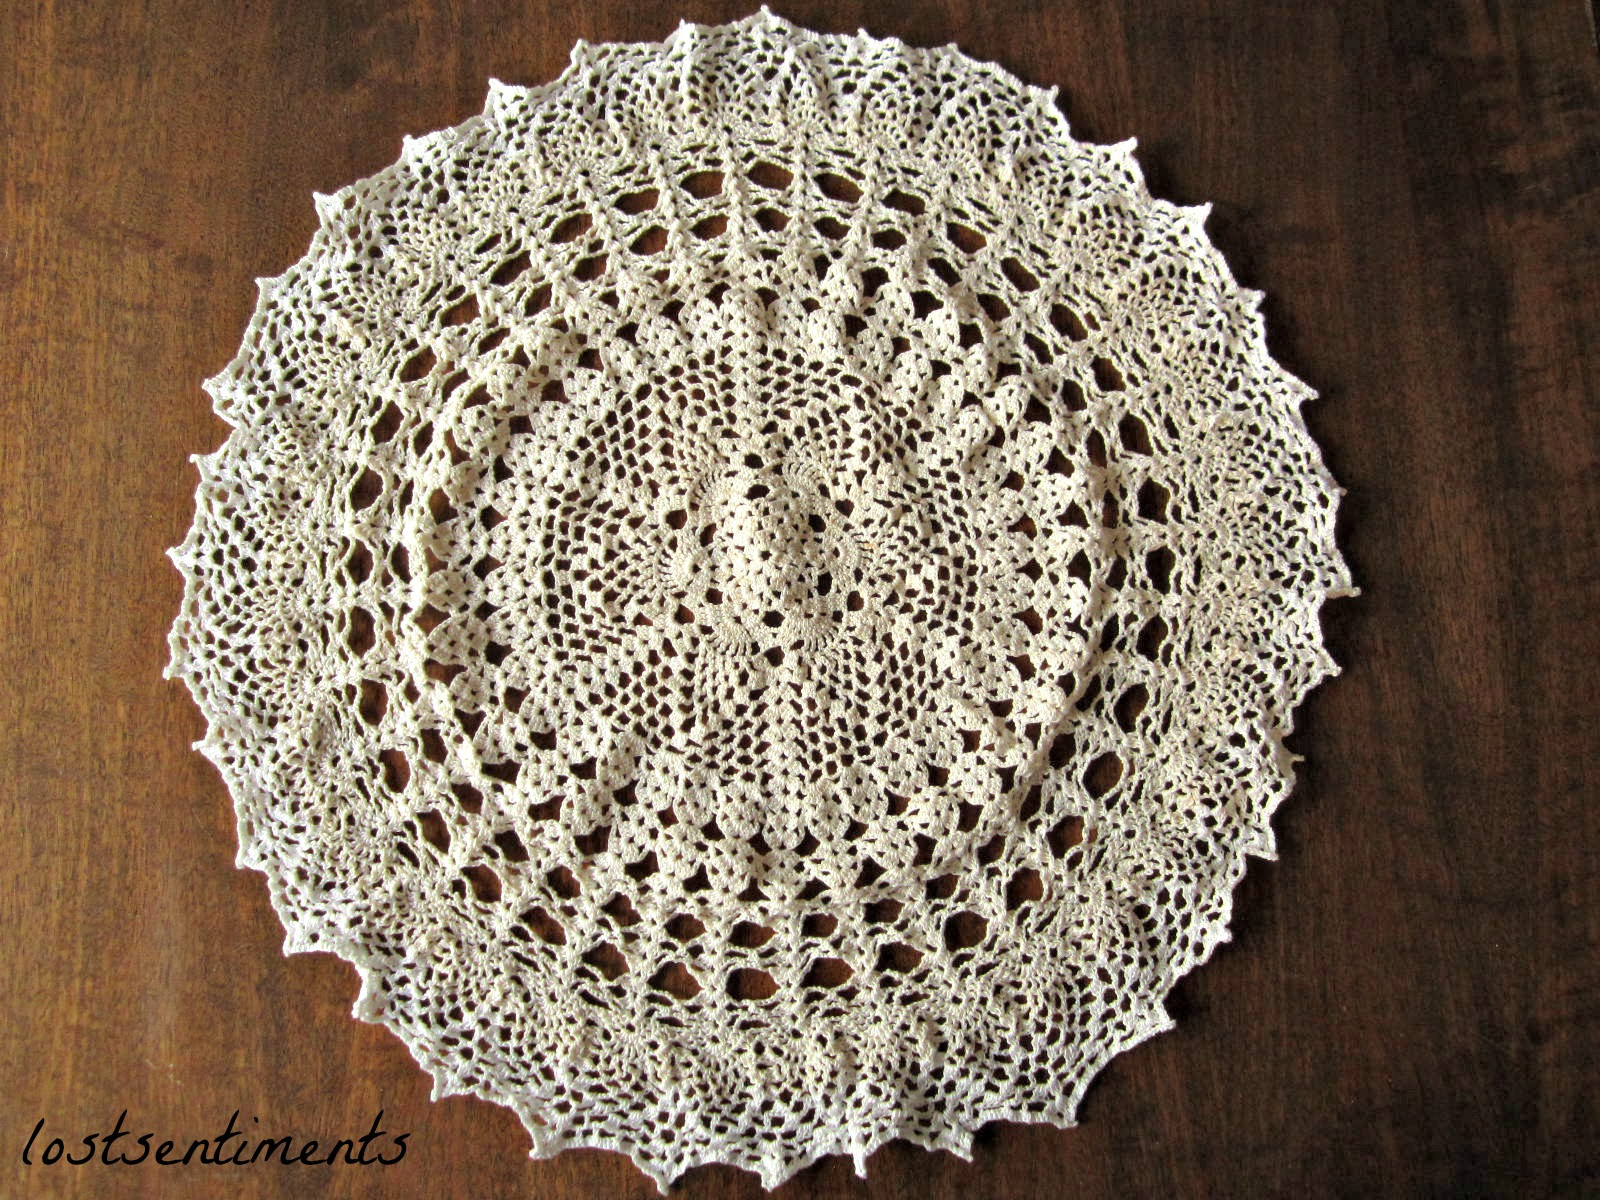 Antique Doilies Elegant Lostsentiments Vintage Crochet Doily Pattern Venus Of Wonderful 44 Models Antique Doilies